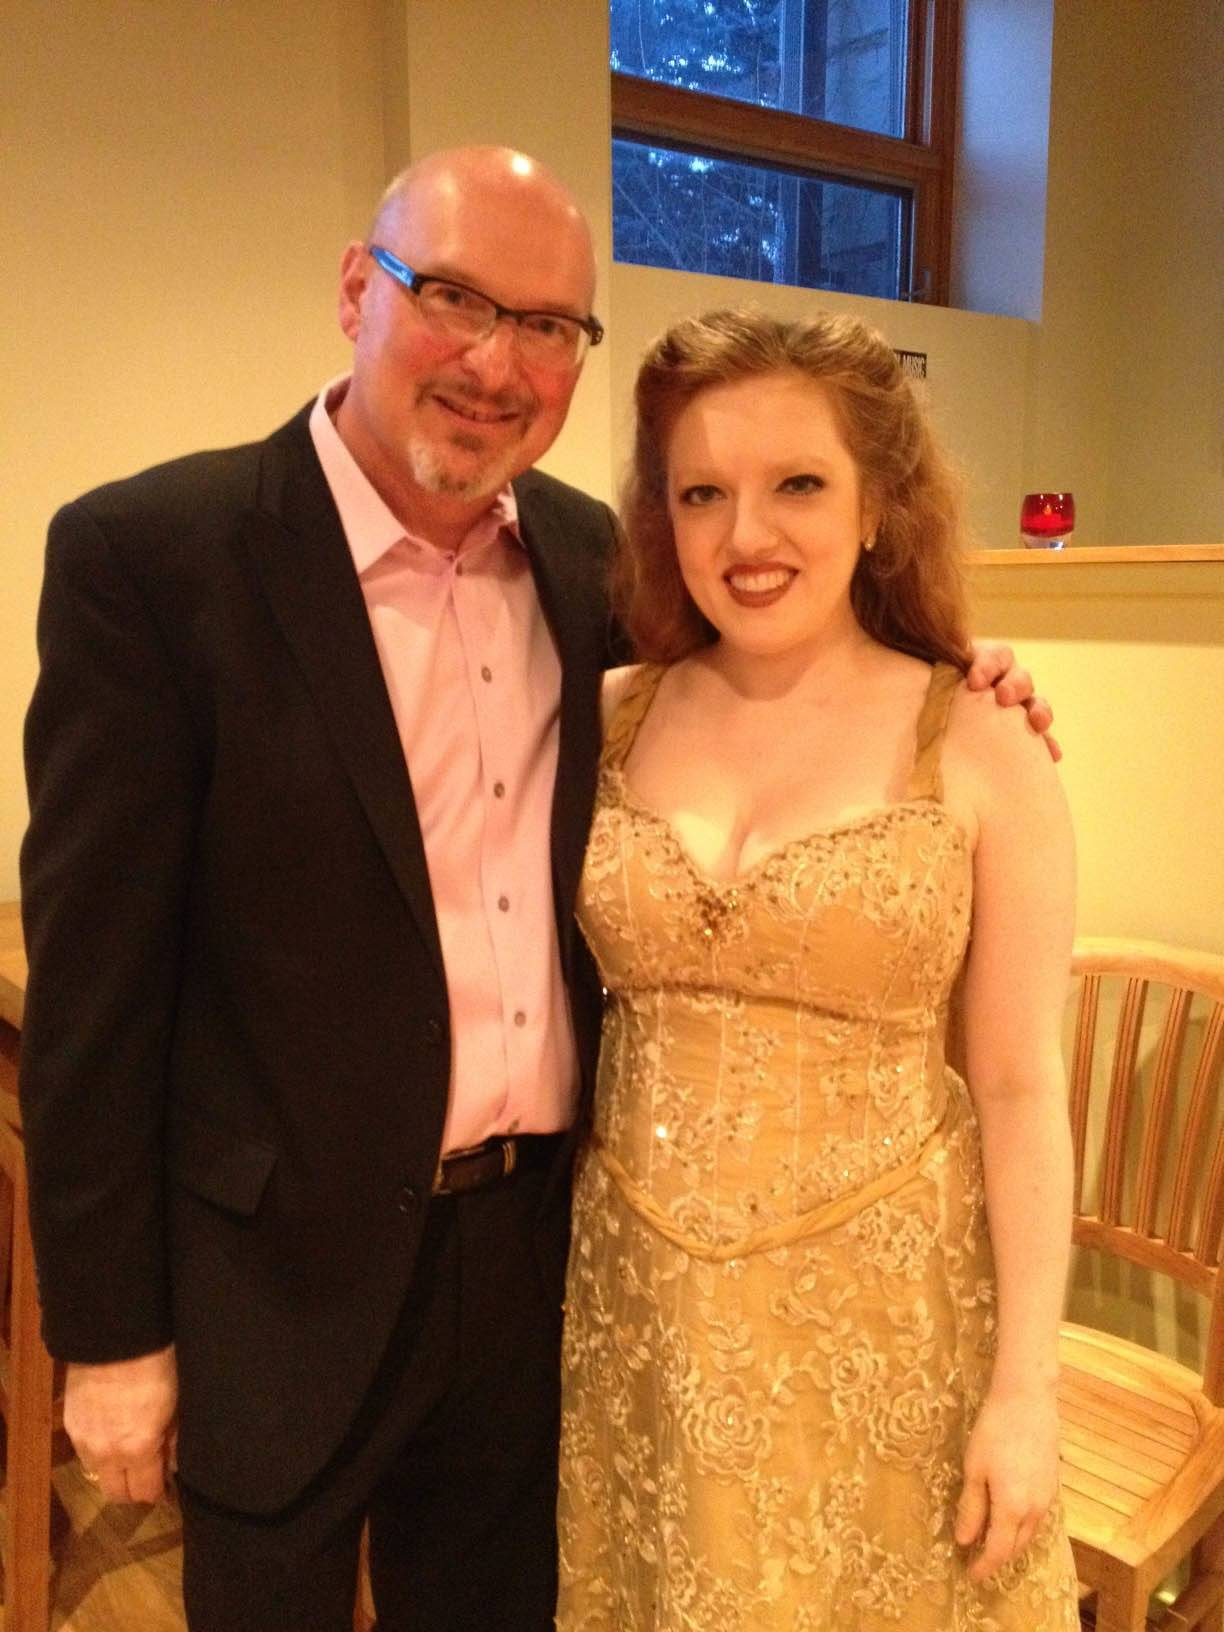 Violinist Rachel Barton Pine, shown with Roger Reupert, house manager for the Listening Room, recently performed to a sold-out crowd at the Crystal Lake venue.